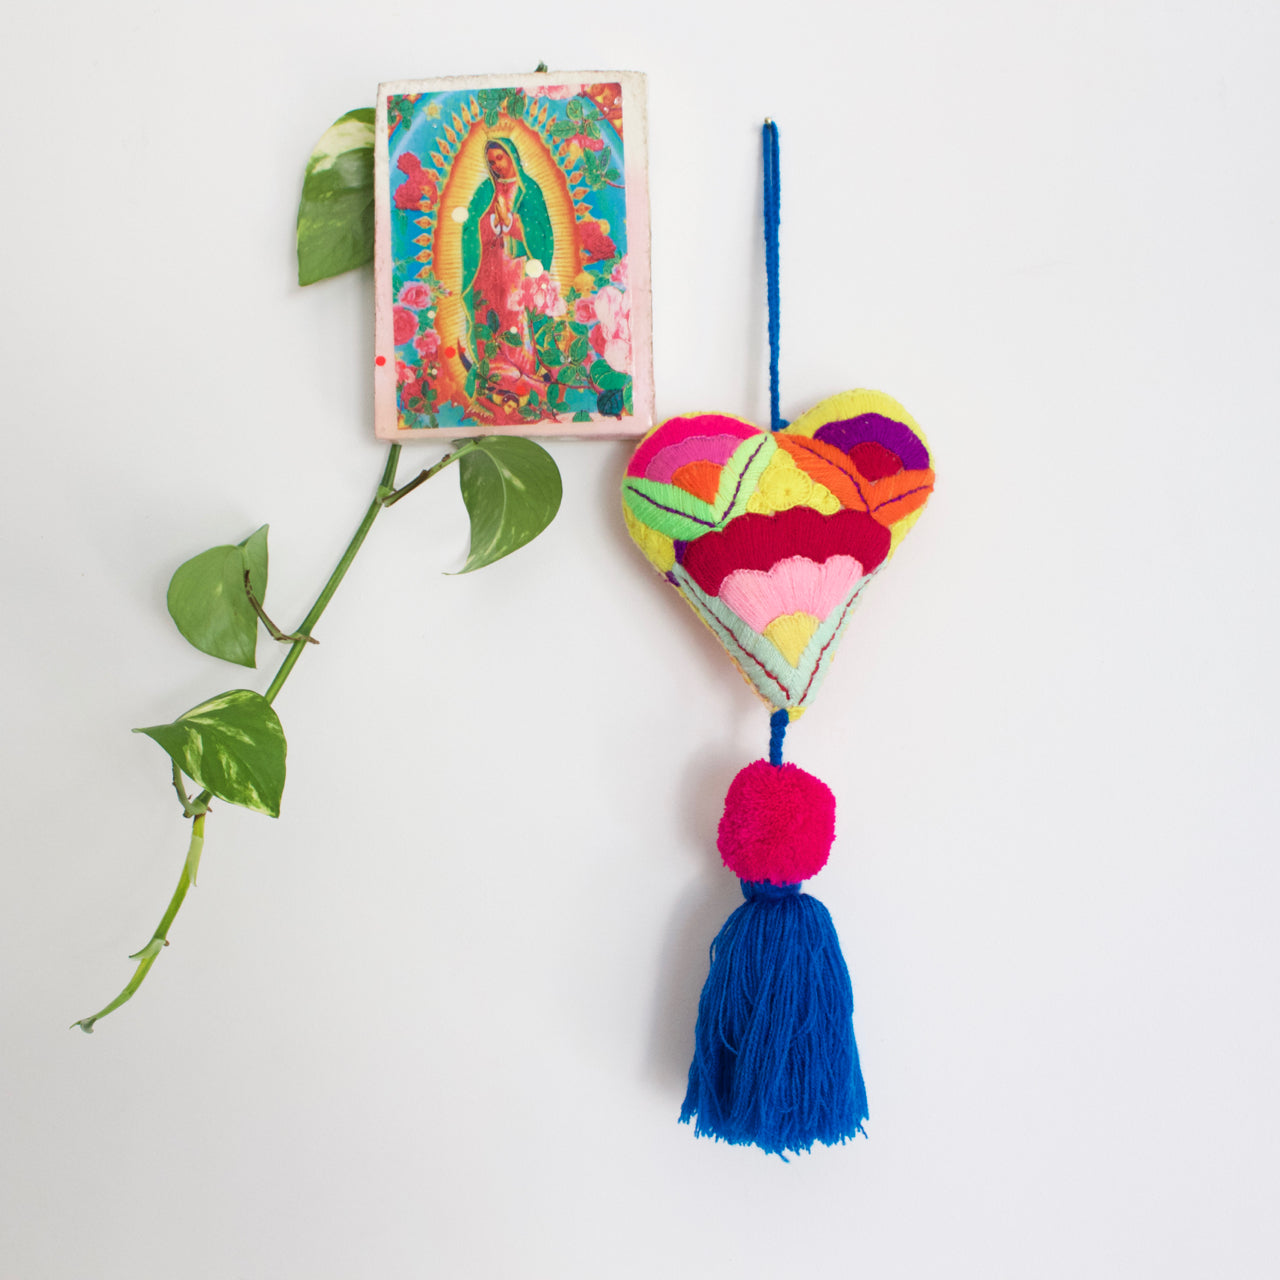 Corazon Pom Pom 44  Decor Blue - Cielo Collective handmade Mexico Guatemala